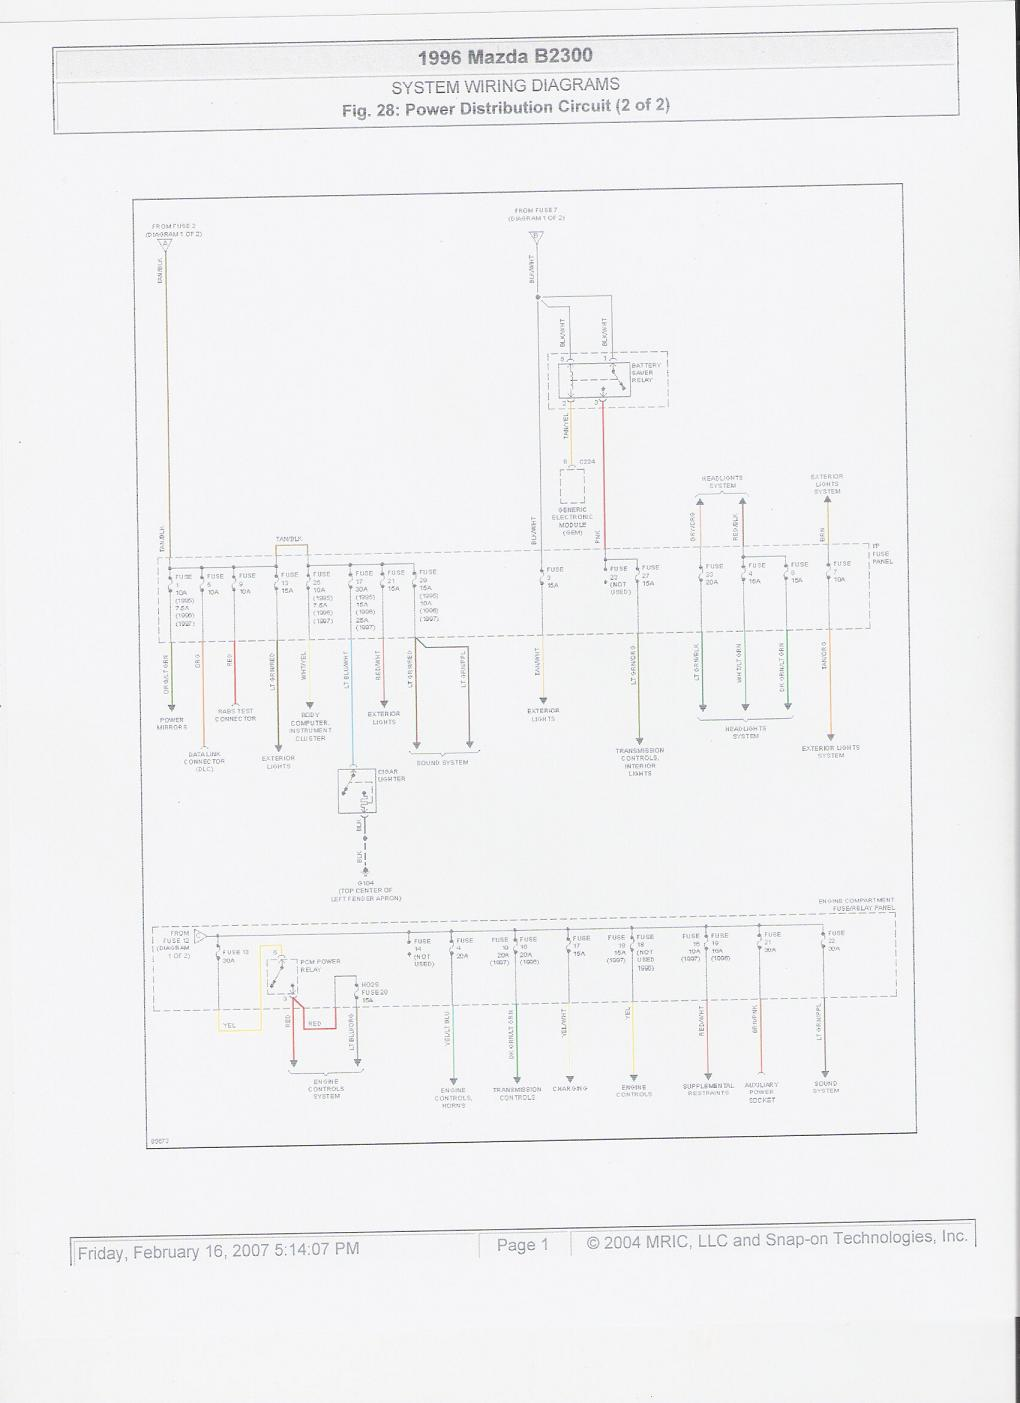 1996 mazda b2300 fuse box    1996       mazda       b2300       fuse    panel diagram     1996       mazda       b2300       fuse    panel diagram